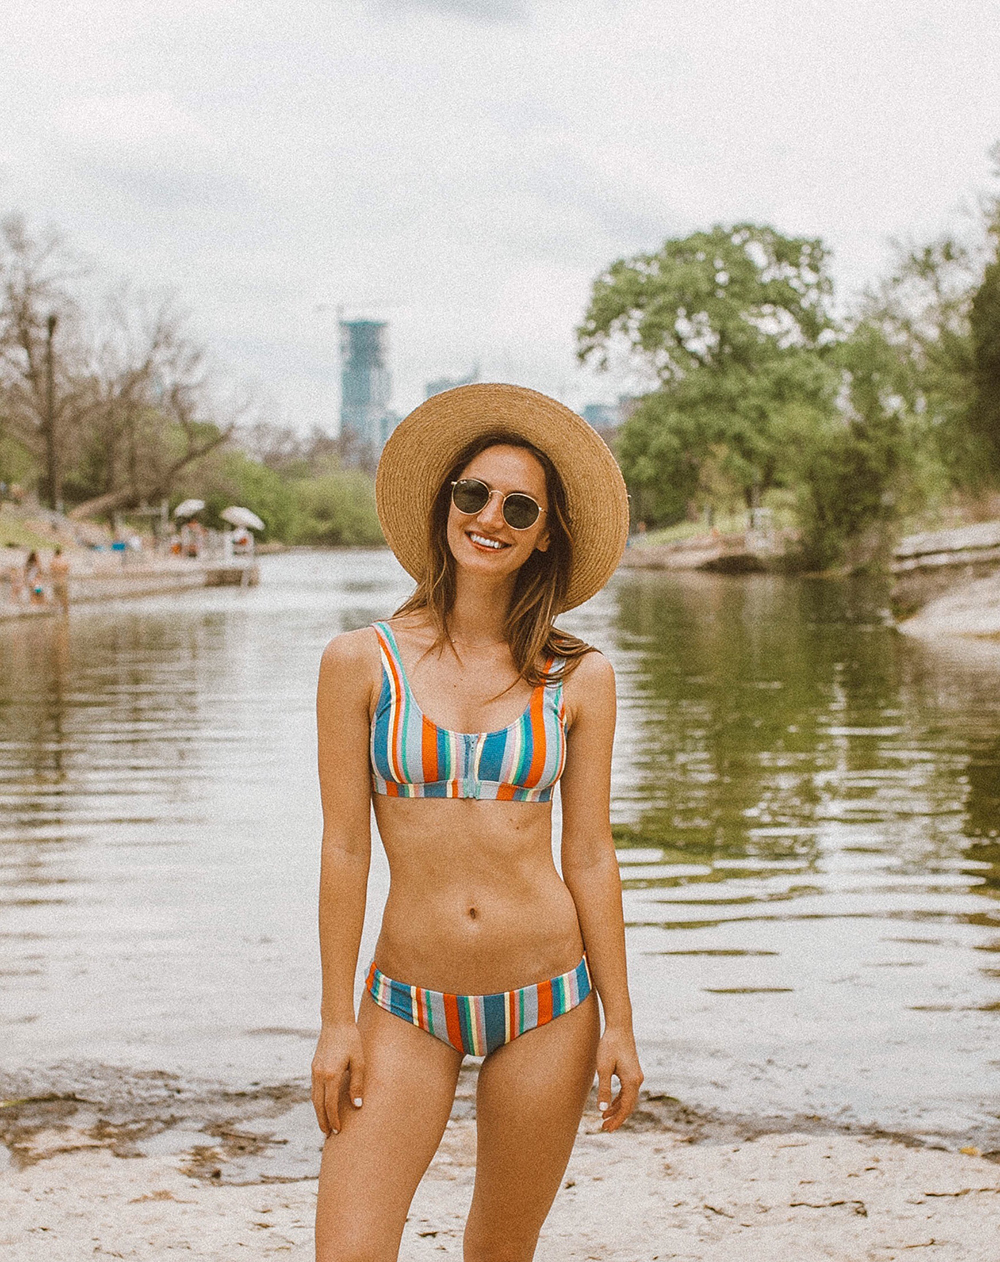 livvyland-blog-olivia-watson-austin-texas-barton-springs-pool-fashion-blogger-billabong-rainbow-swimsuit-1